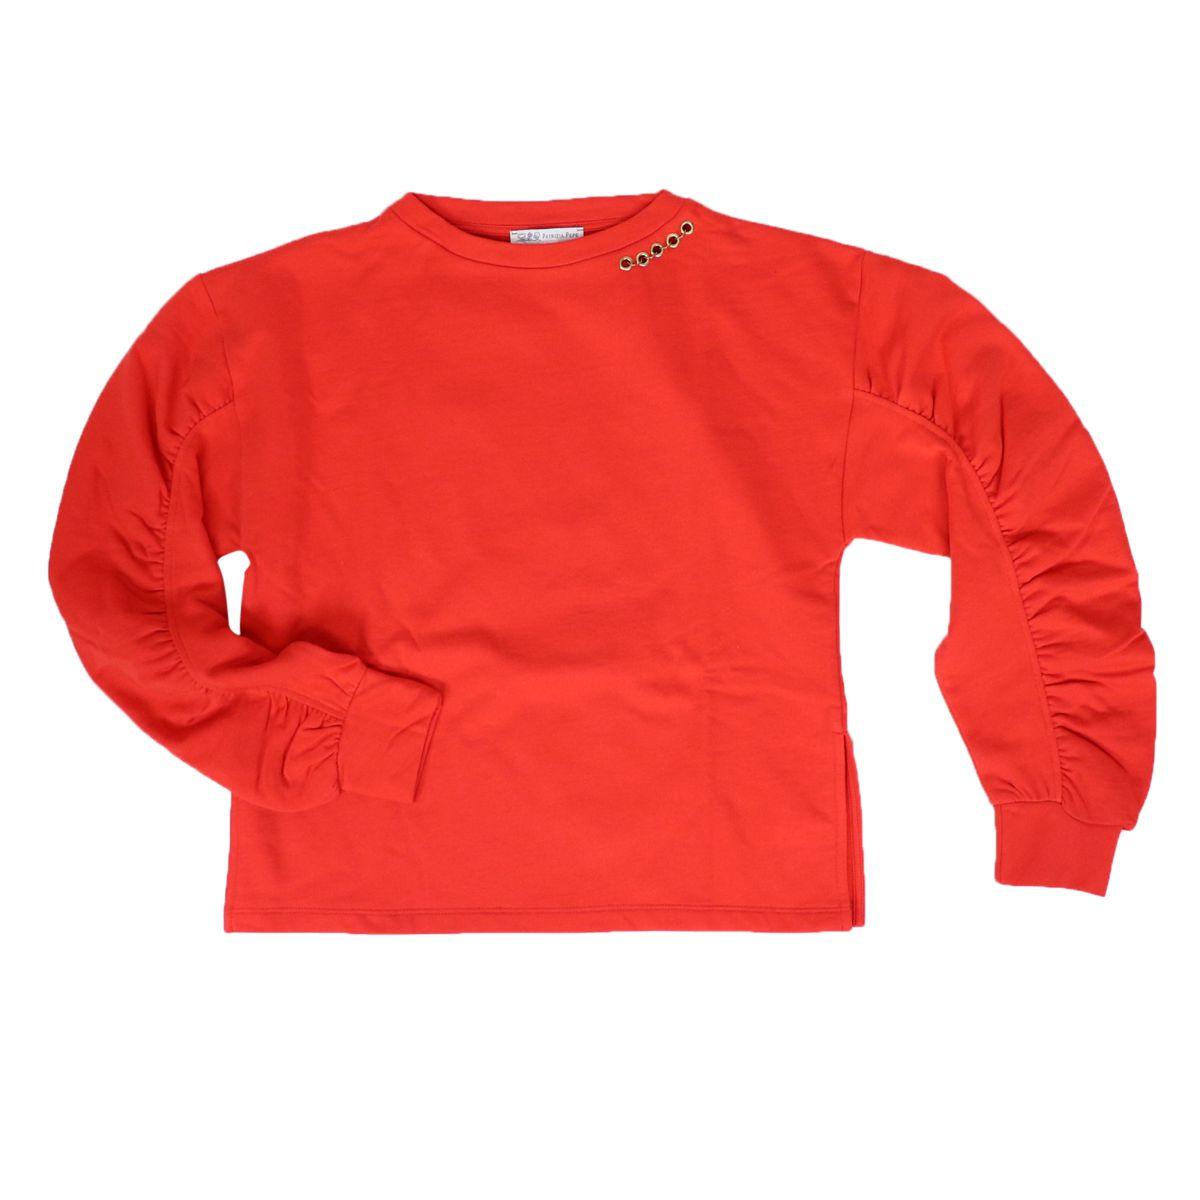 Cotton sweatshirt with big logo on the back Red Patrizia Pepe